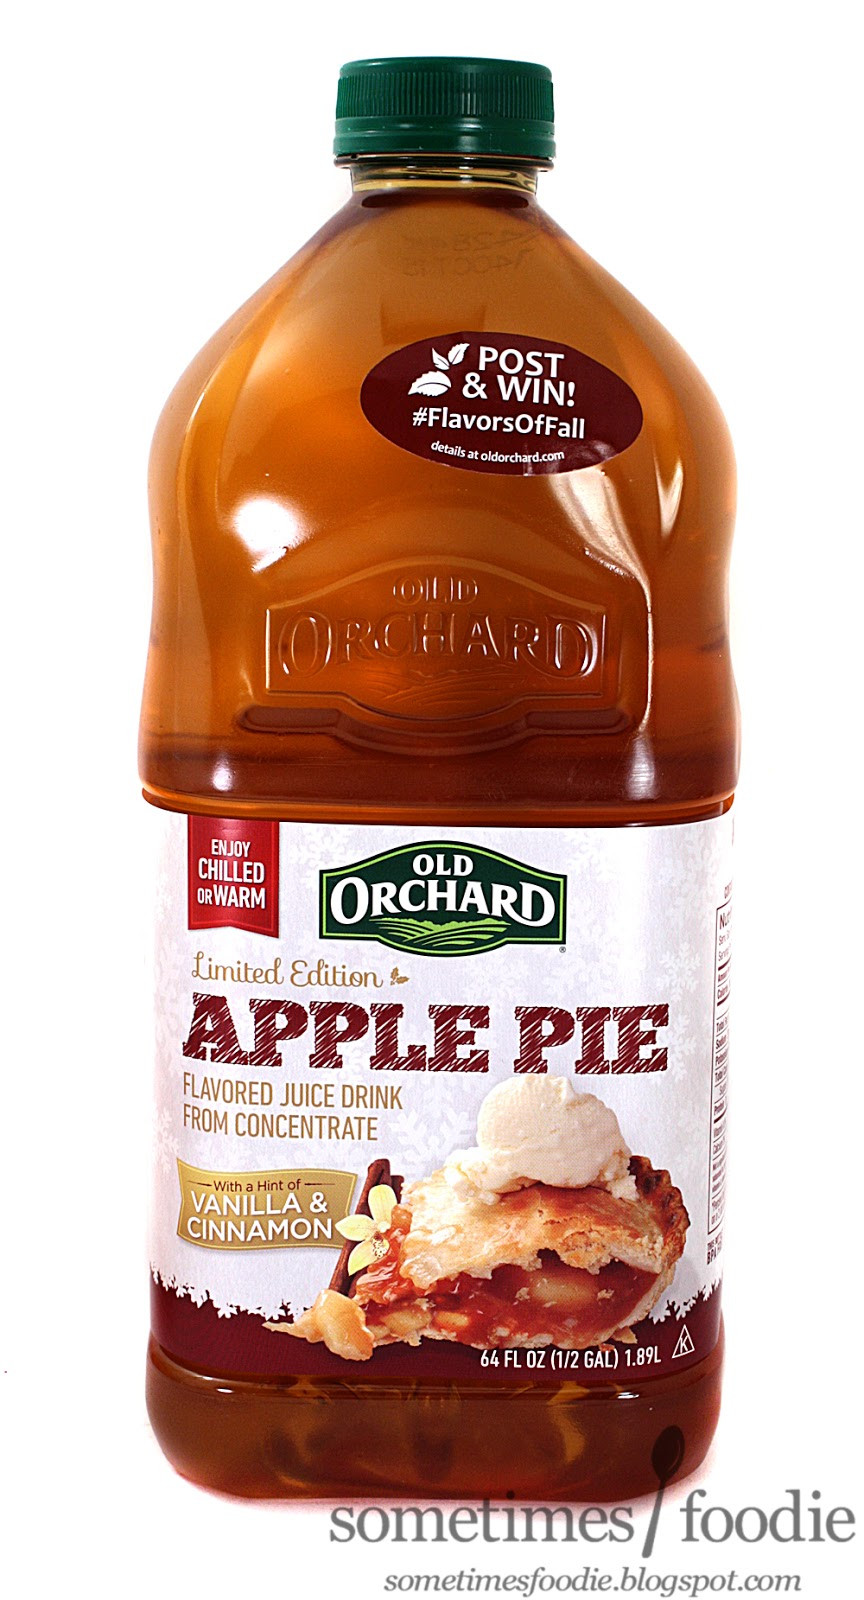 How To Make Apple Pie Drink  Sometimes Foo Limited Edition Apple Pie Juice Drink